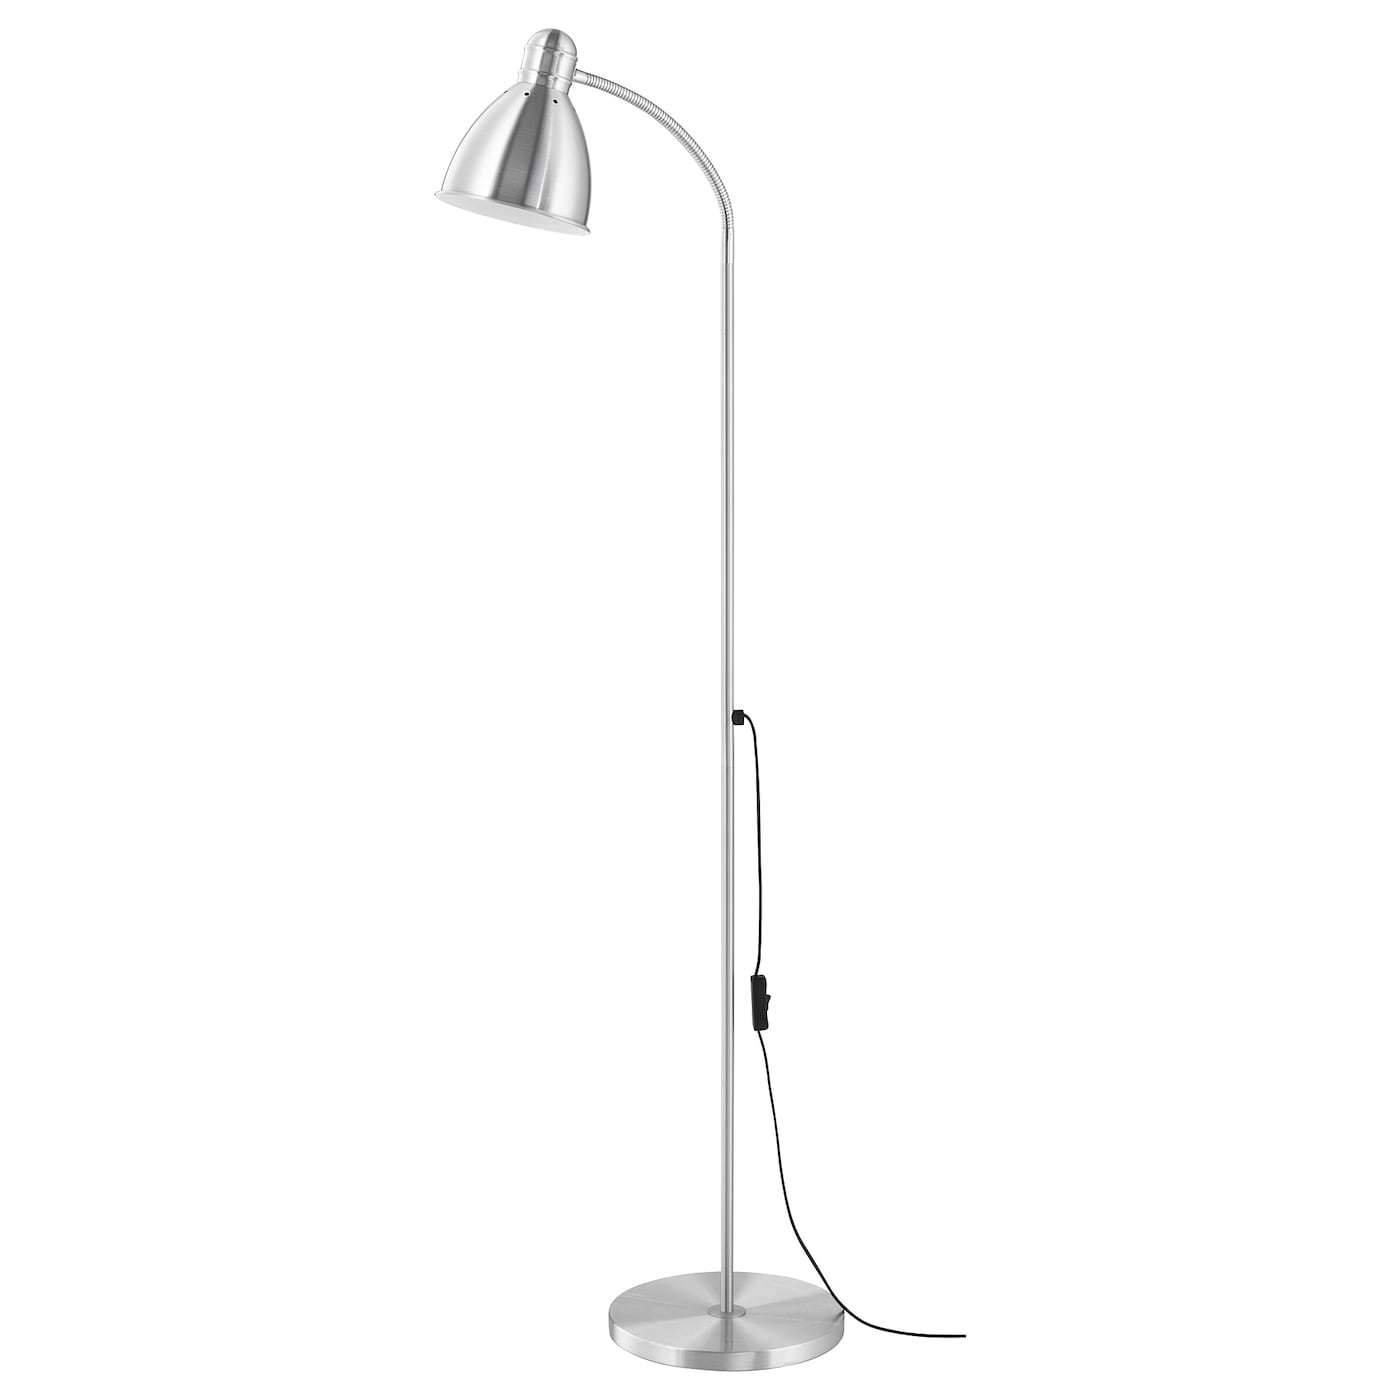 IKEA LERSTA floor/reading lamp Provides a directed light that is great for reading.